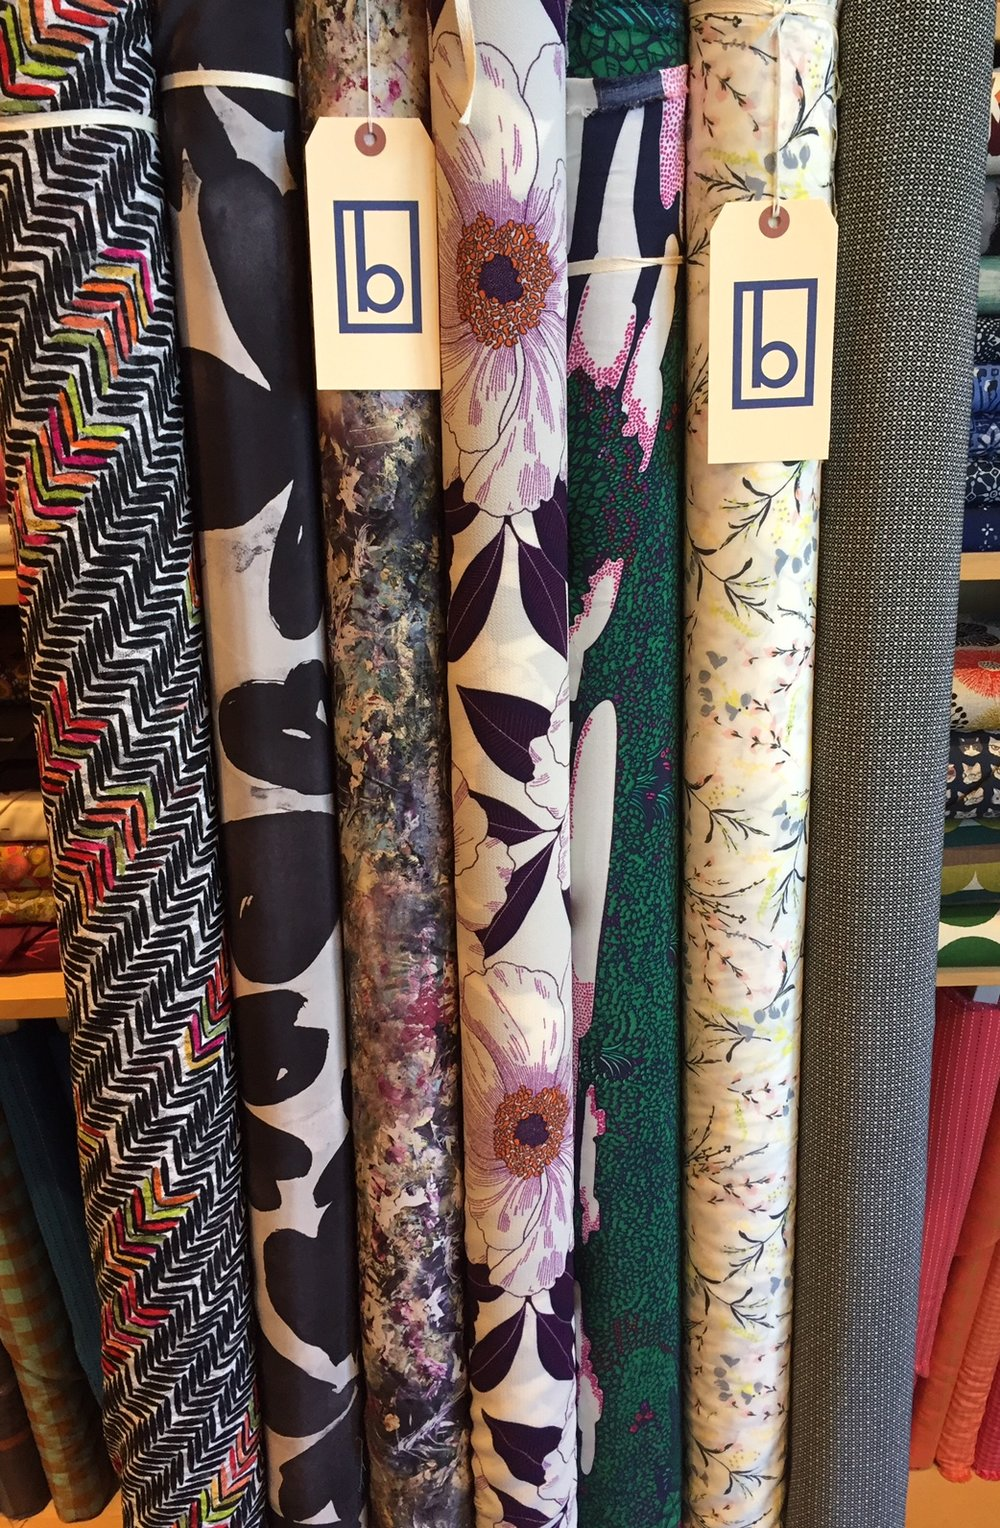 Some really interesting and gorgeous pieces in this here pic! On the far left is a rayon knit gauze that is so lovely and delicate, with a bold colored design. A couple of silks, large floral poly crepe with detail so sharp, three rayons, the third in from the left is an incredible jungle print in navy, kelly, fuchsia and white, striking!